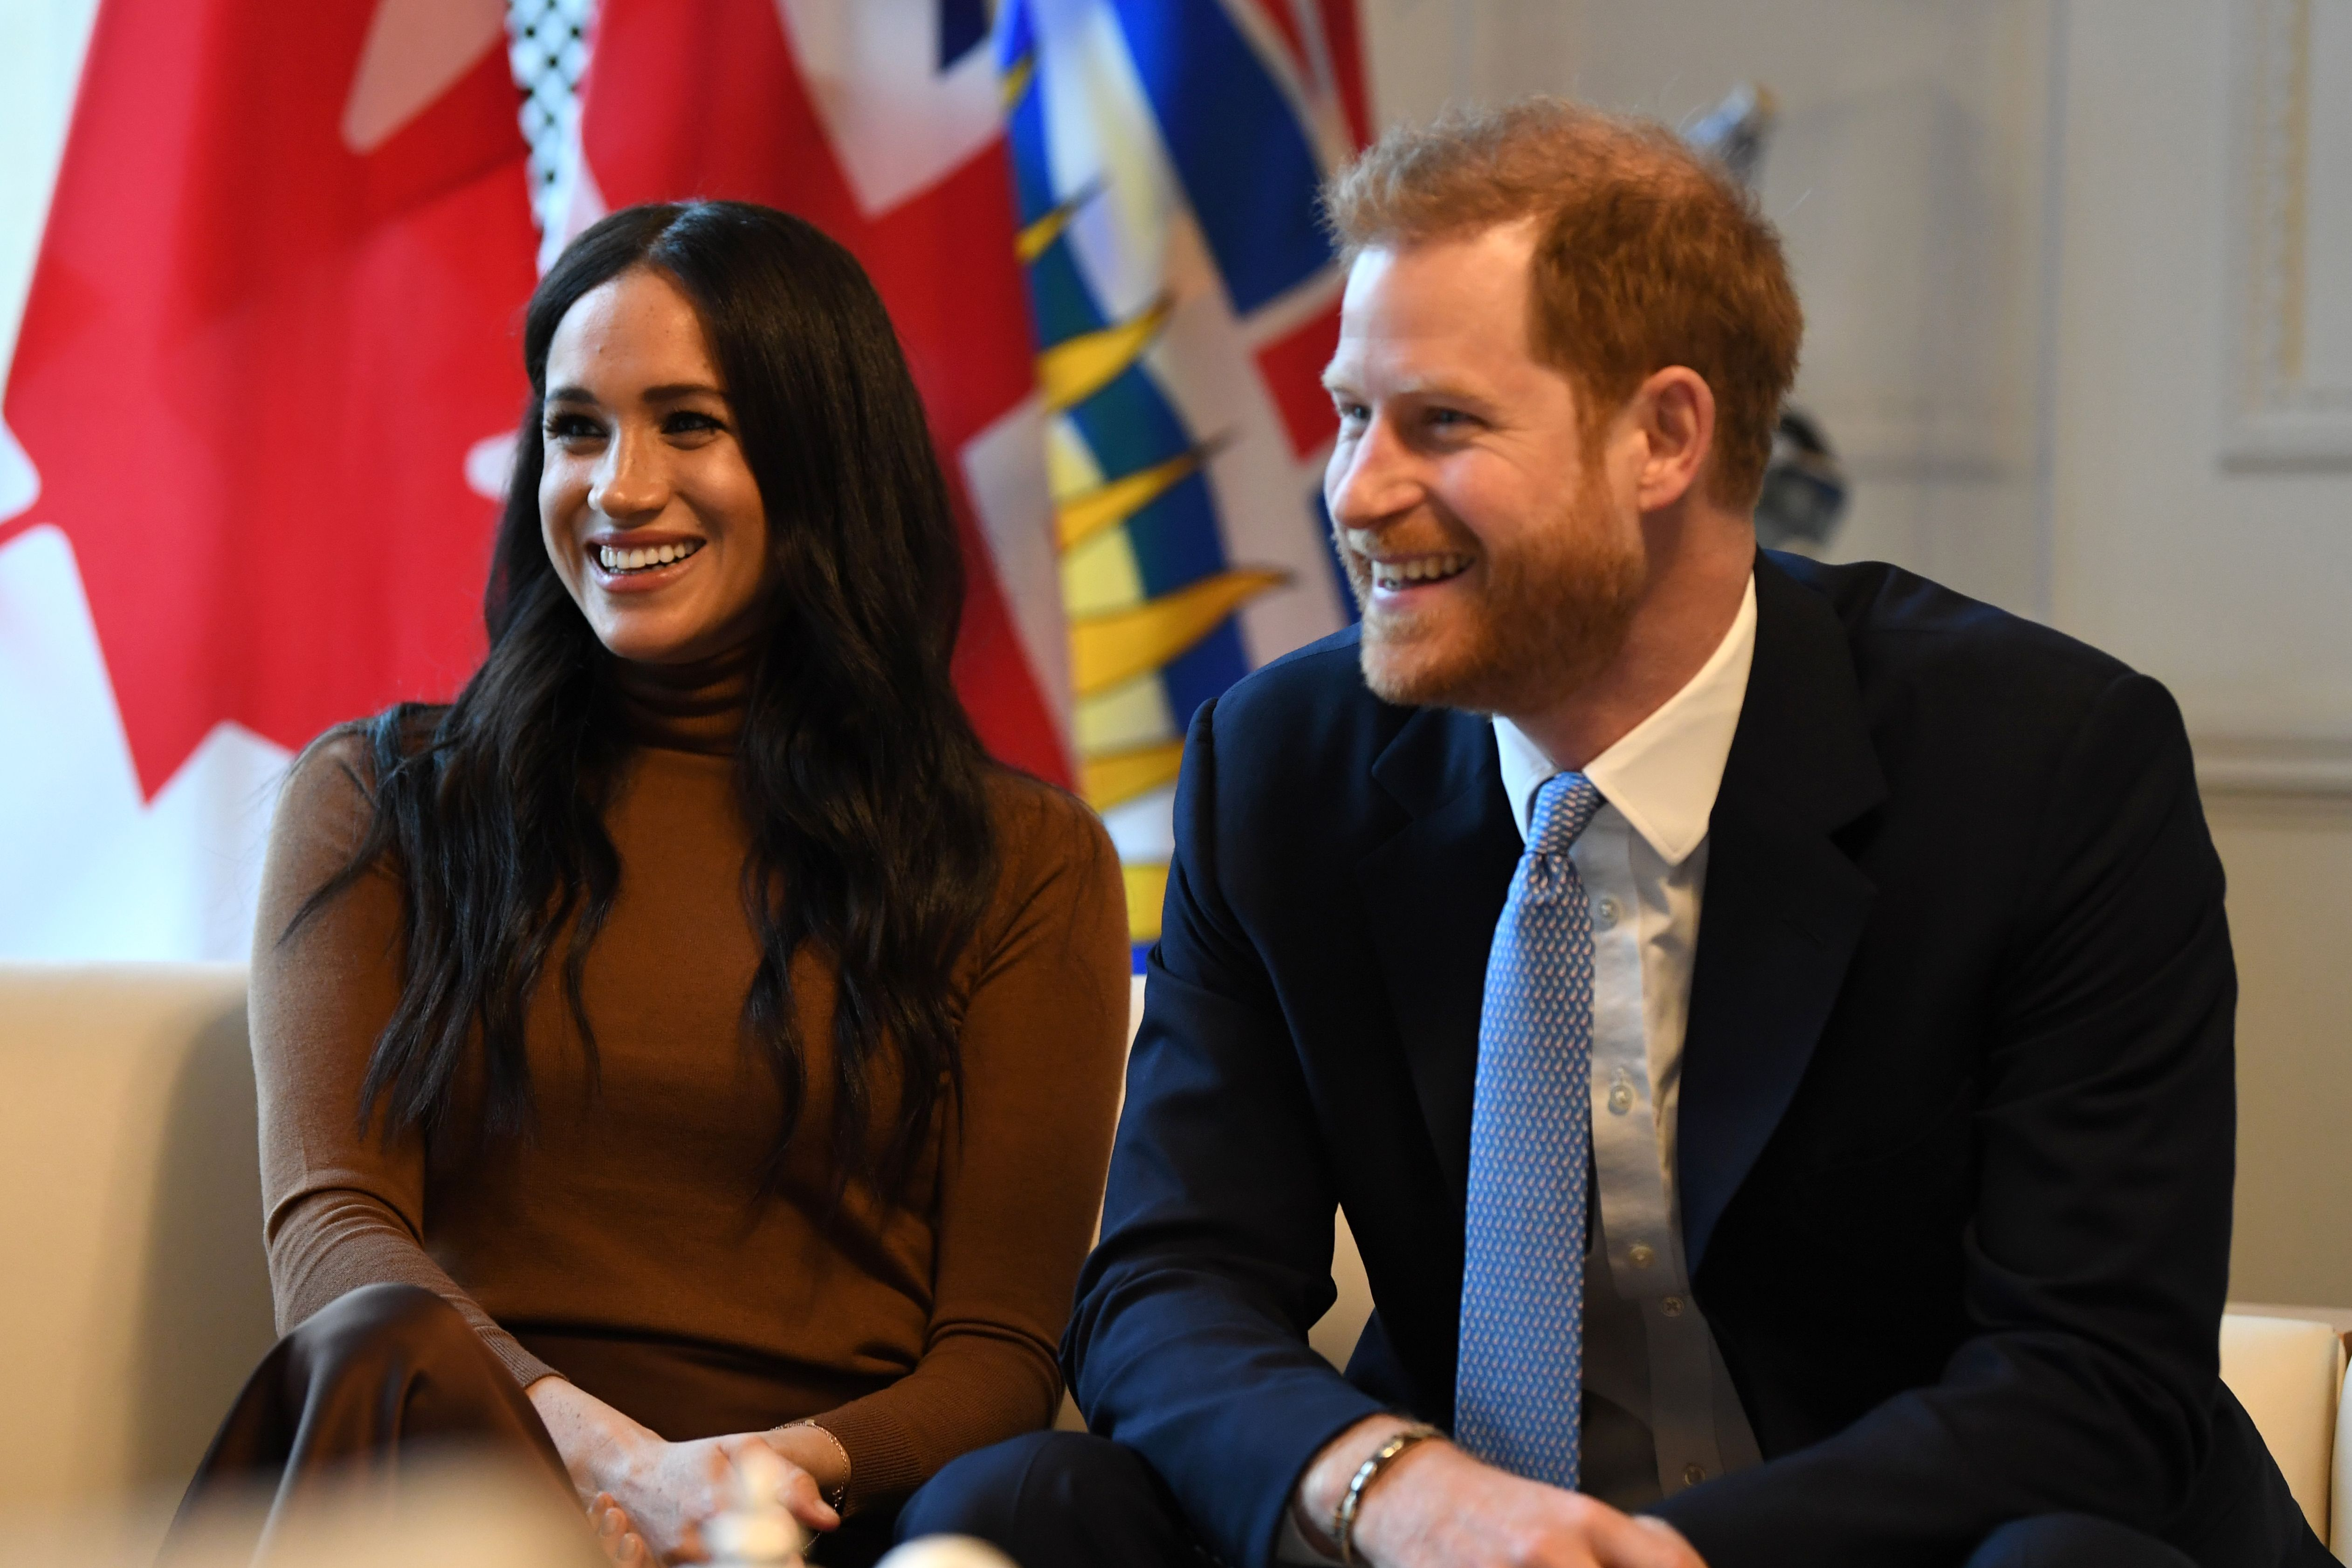 Prince Harry and Meghan Markle Now Have an Offer to Move to NYC… From Madonna